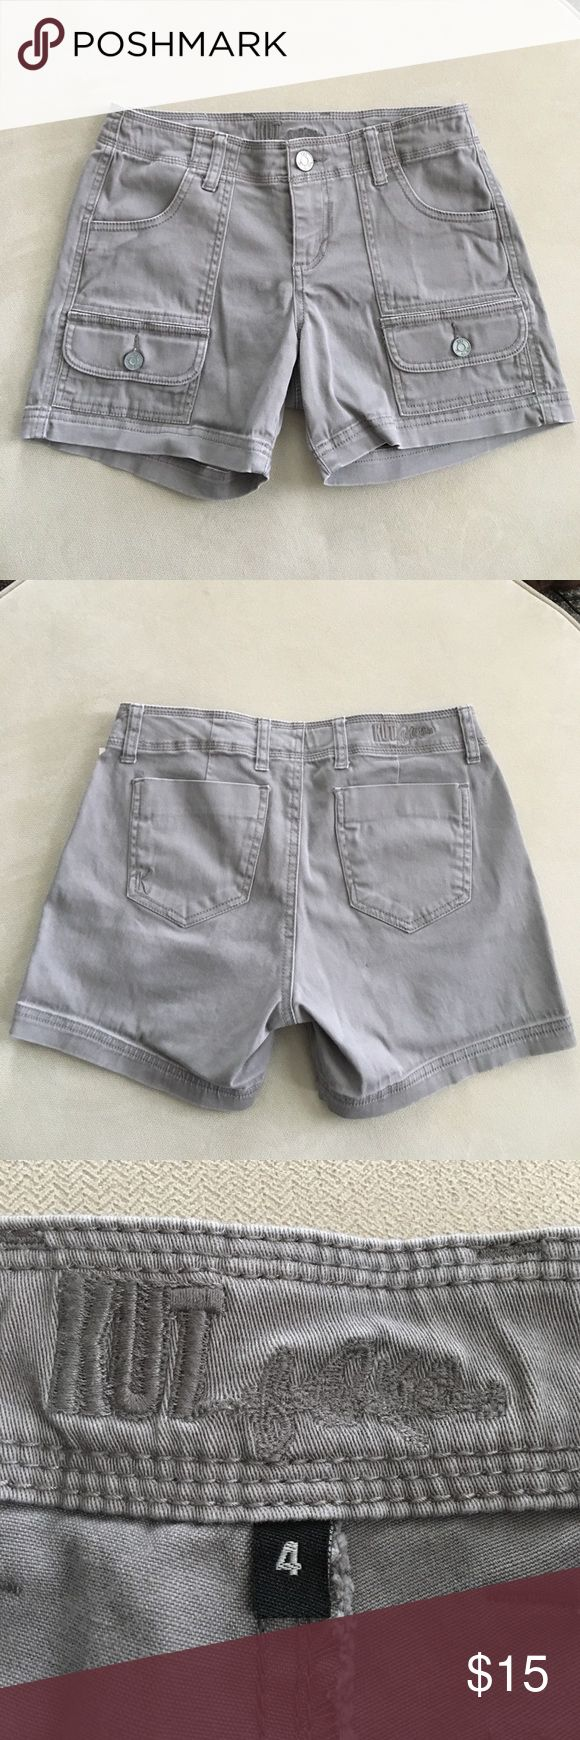 KUT from the Kloth Gray Shorts In good condition. Kut from the Kloth Shorts